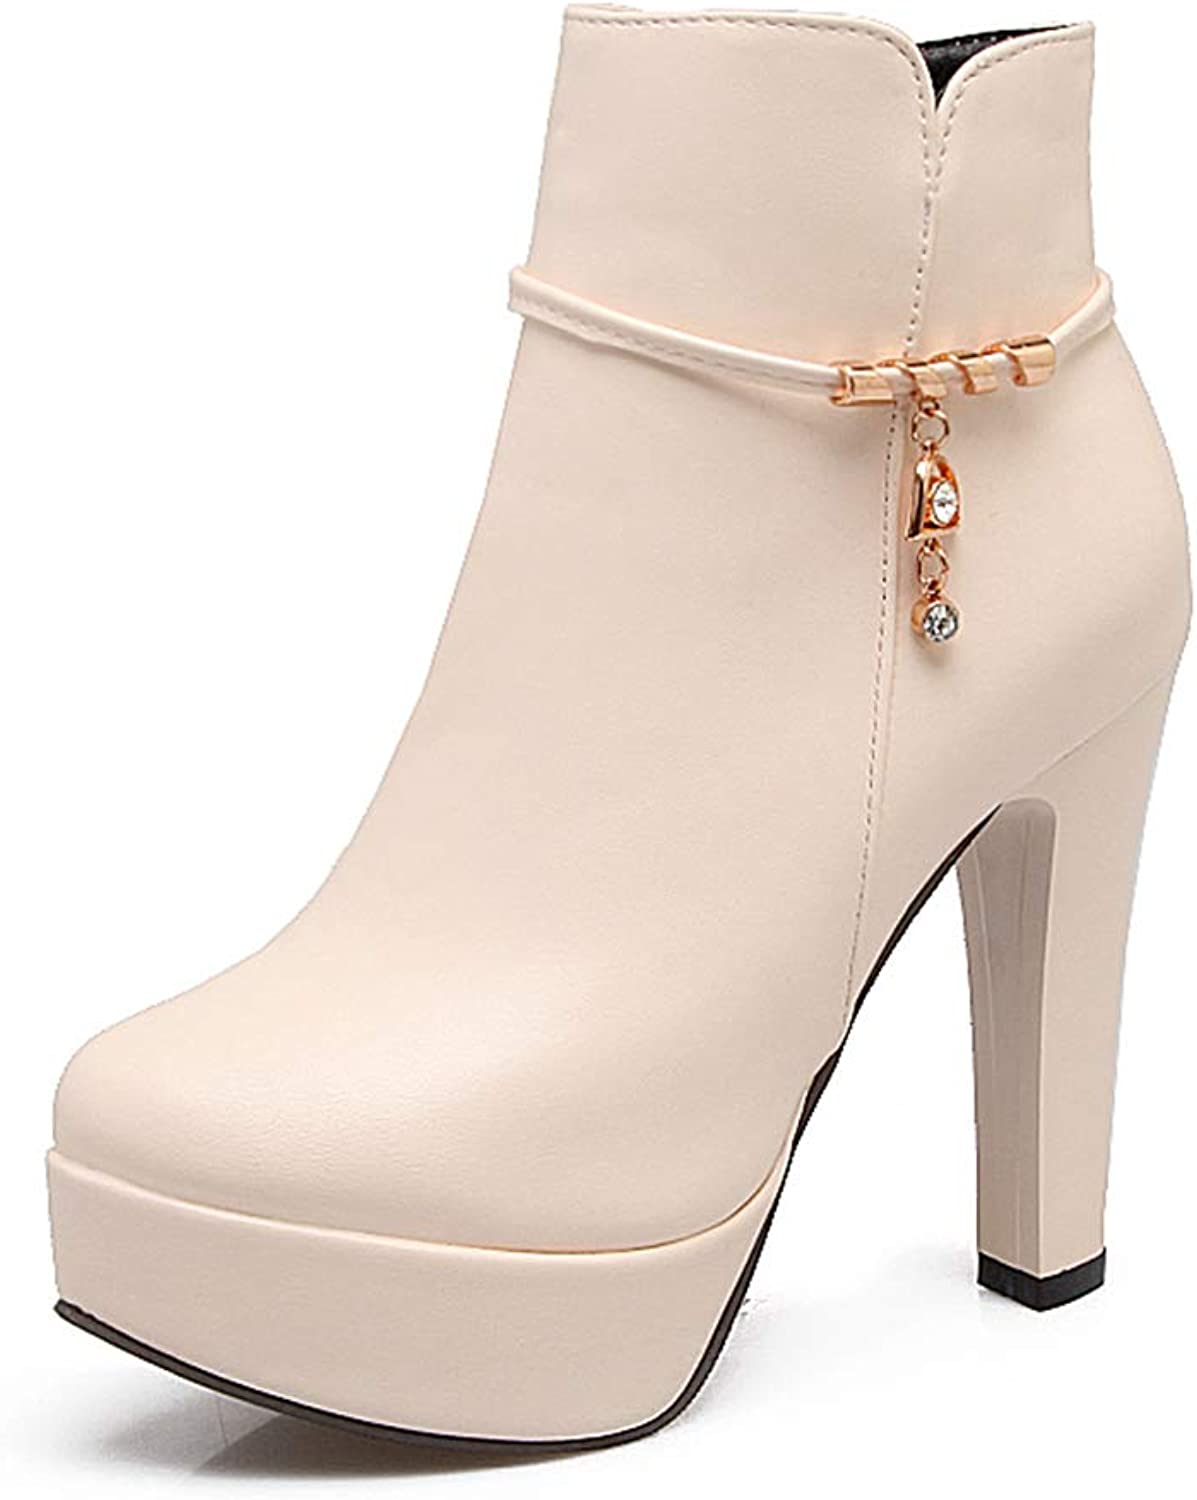 Zarbrina Womens Chunky Block Heel Platform Ankle Boots Ladies Fashion Sexy Round Toe Rubber Sole Zipper Up Slip On Party Dress shoes Beige